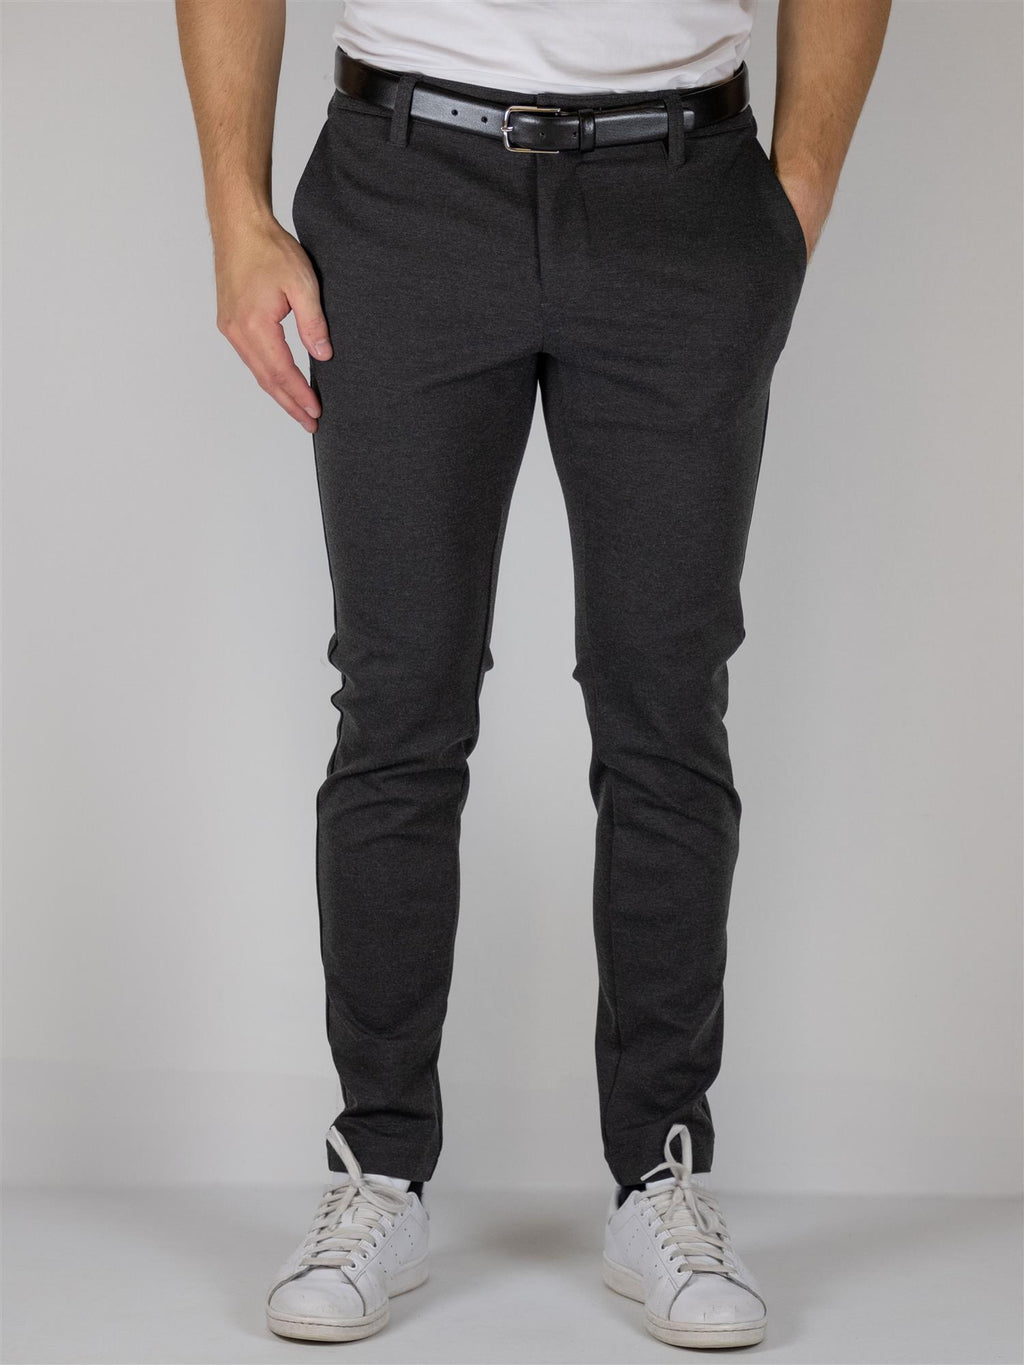 Burch Flex pant - Dark Grey Raven